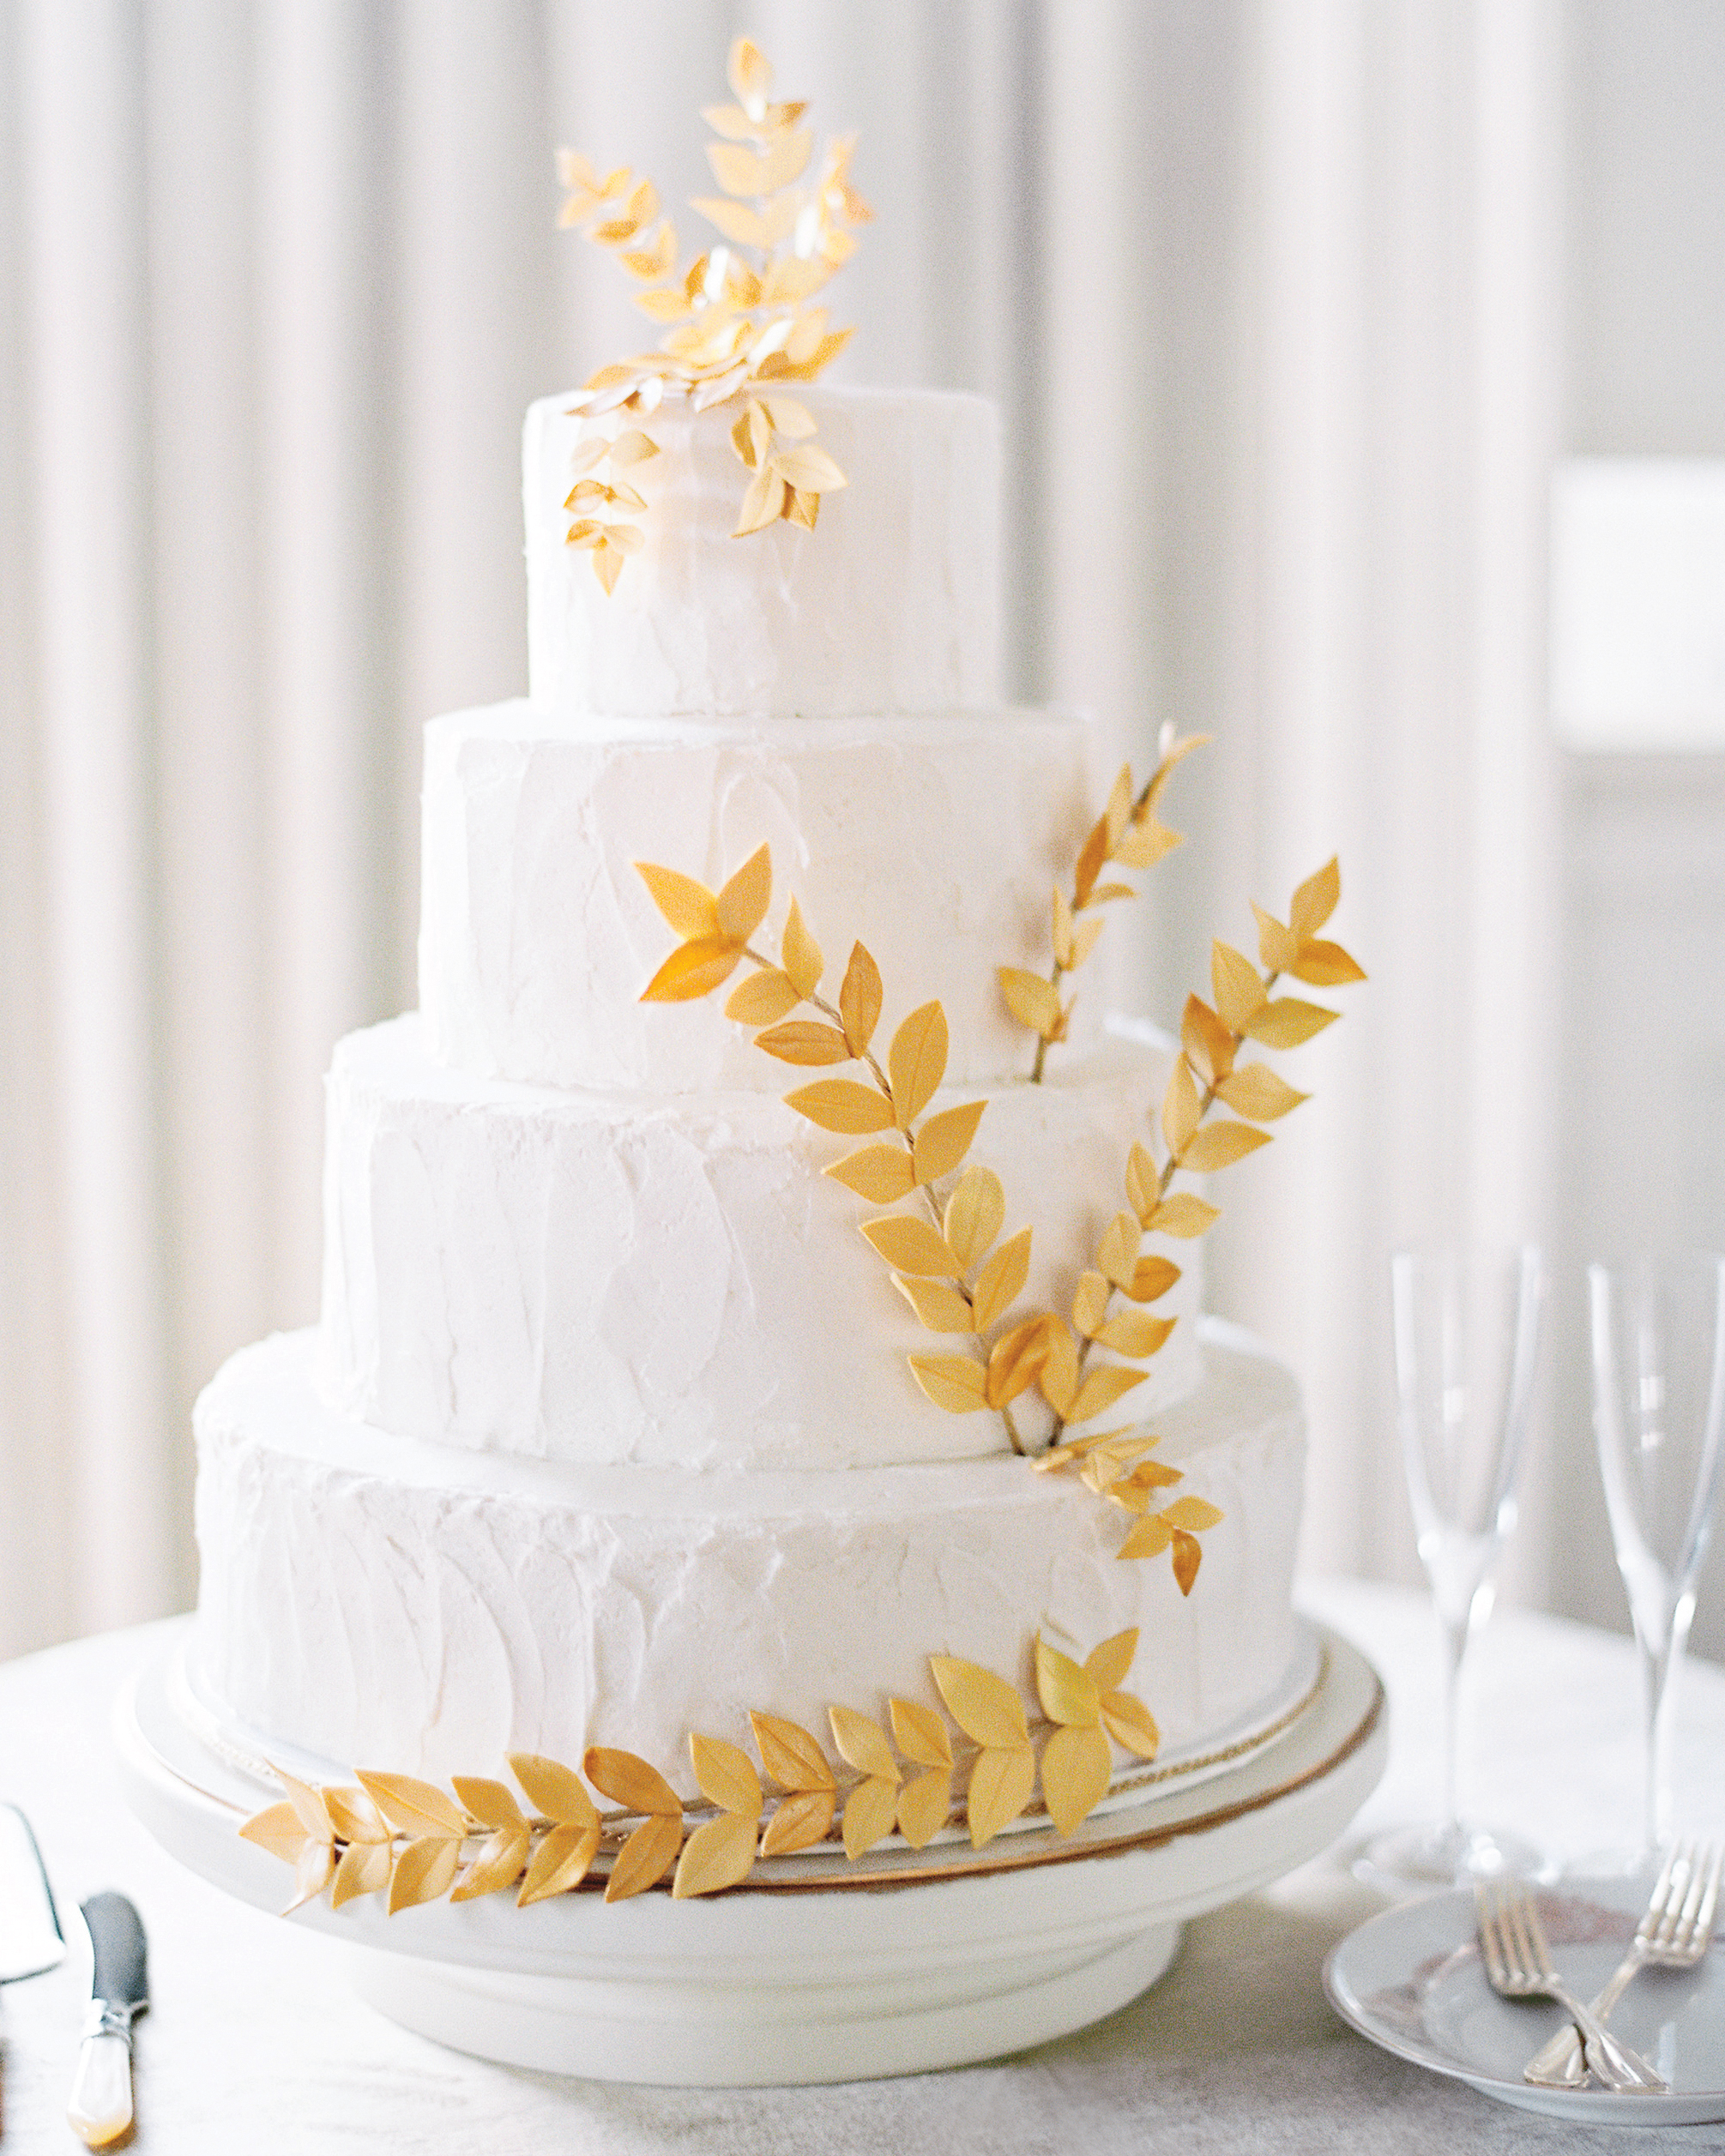 weddingcake-gold-leaf-004786-r-1-016-mwds110148.jpg